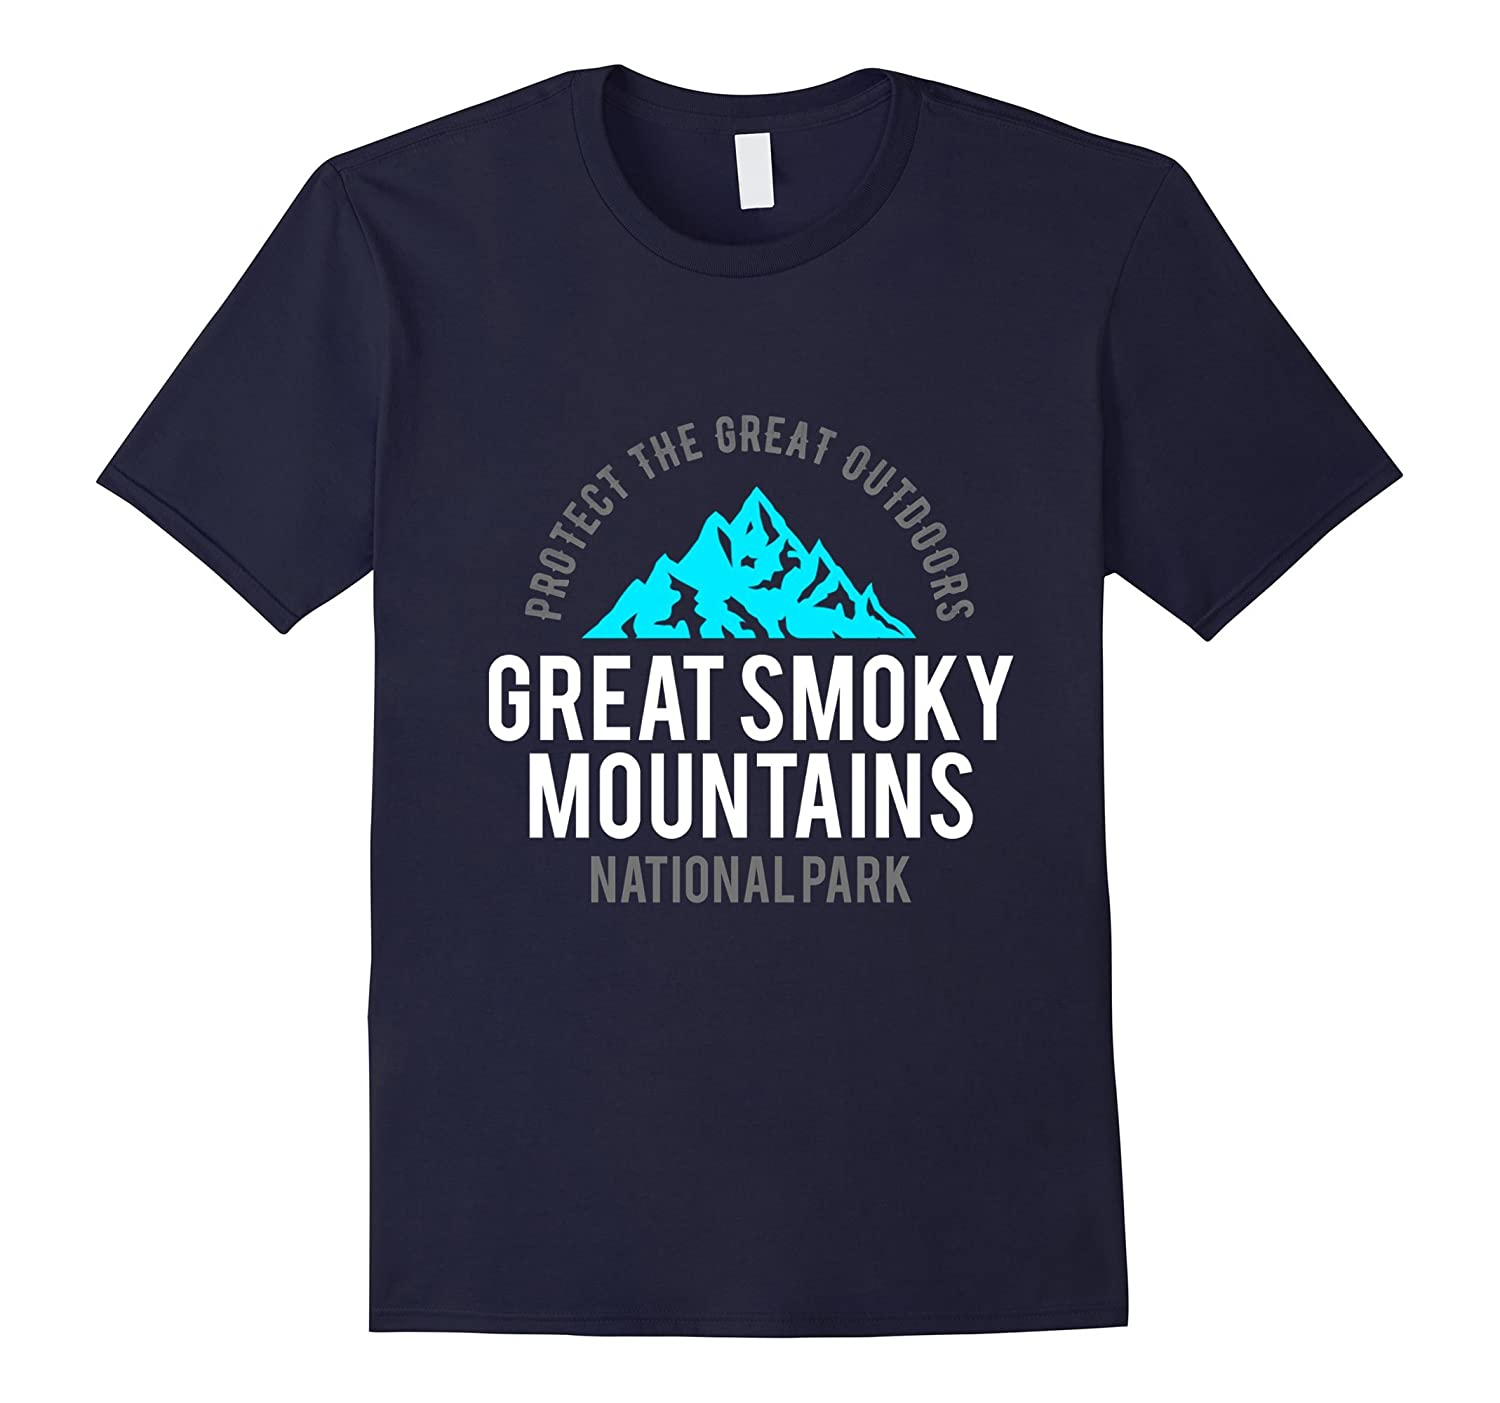 Protect The Great Outdoors Great Smoky Mountains US T-Shirt-FL